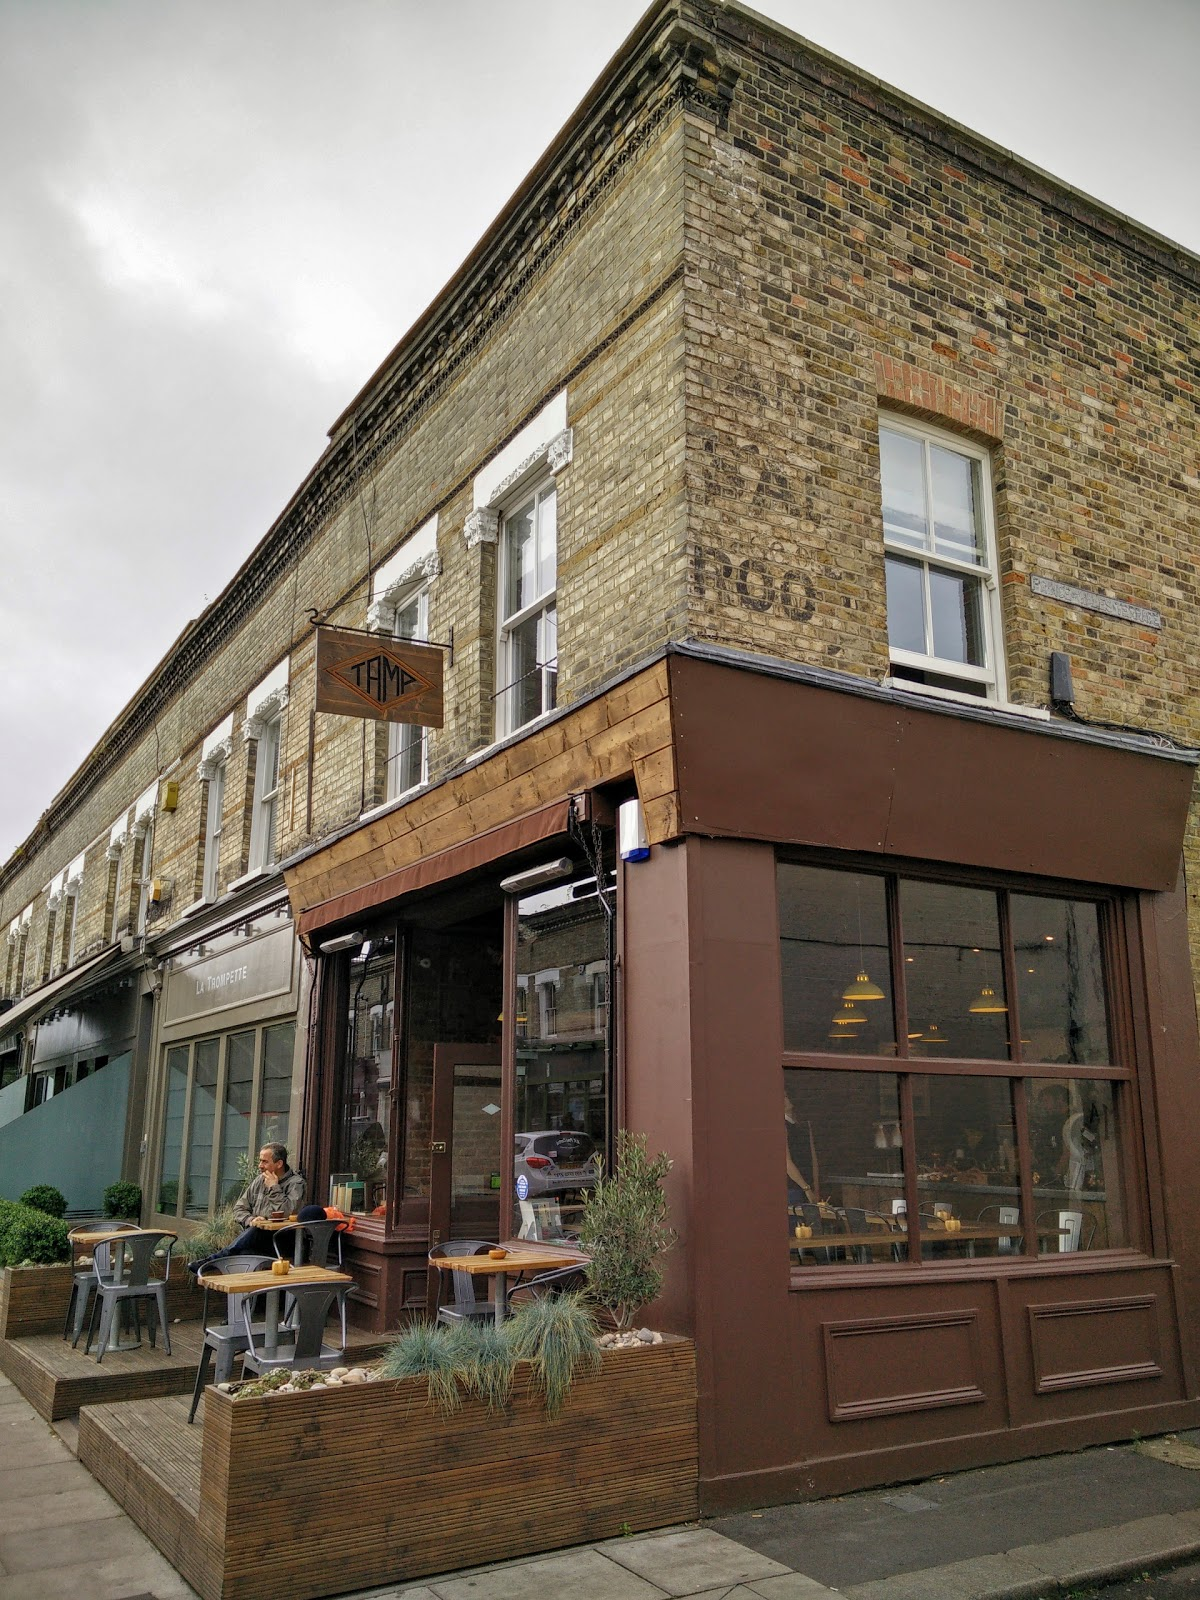 Tamp Coffee: A Work-Friendly Place in London